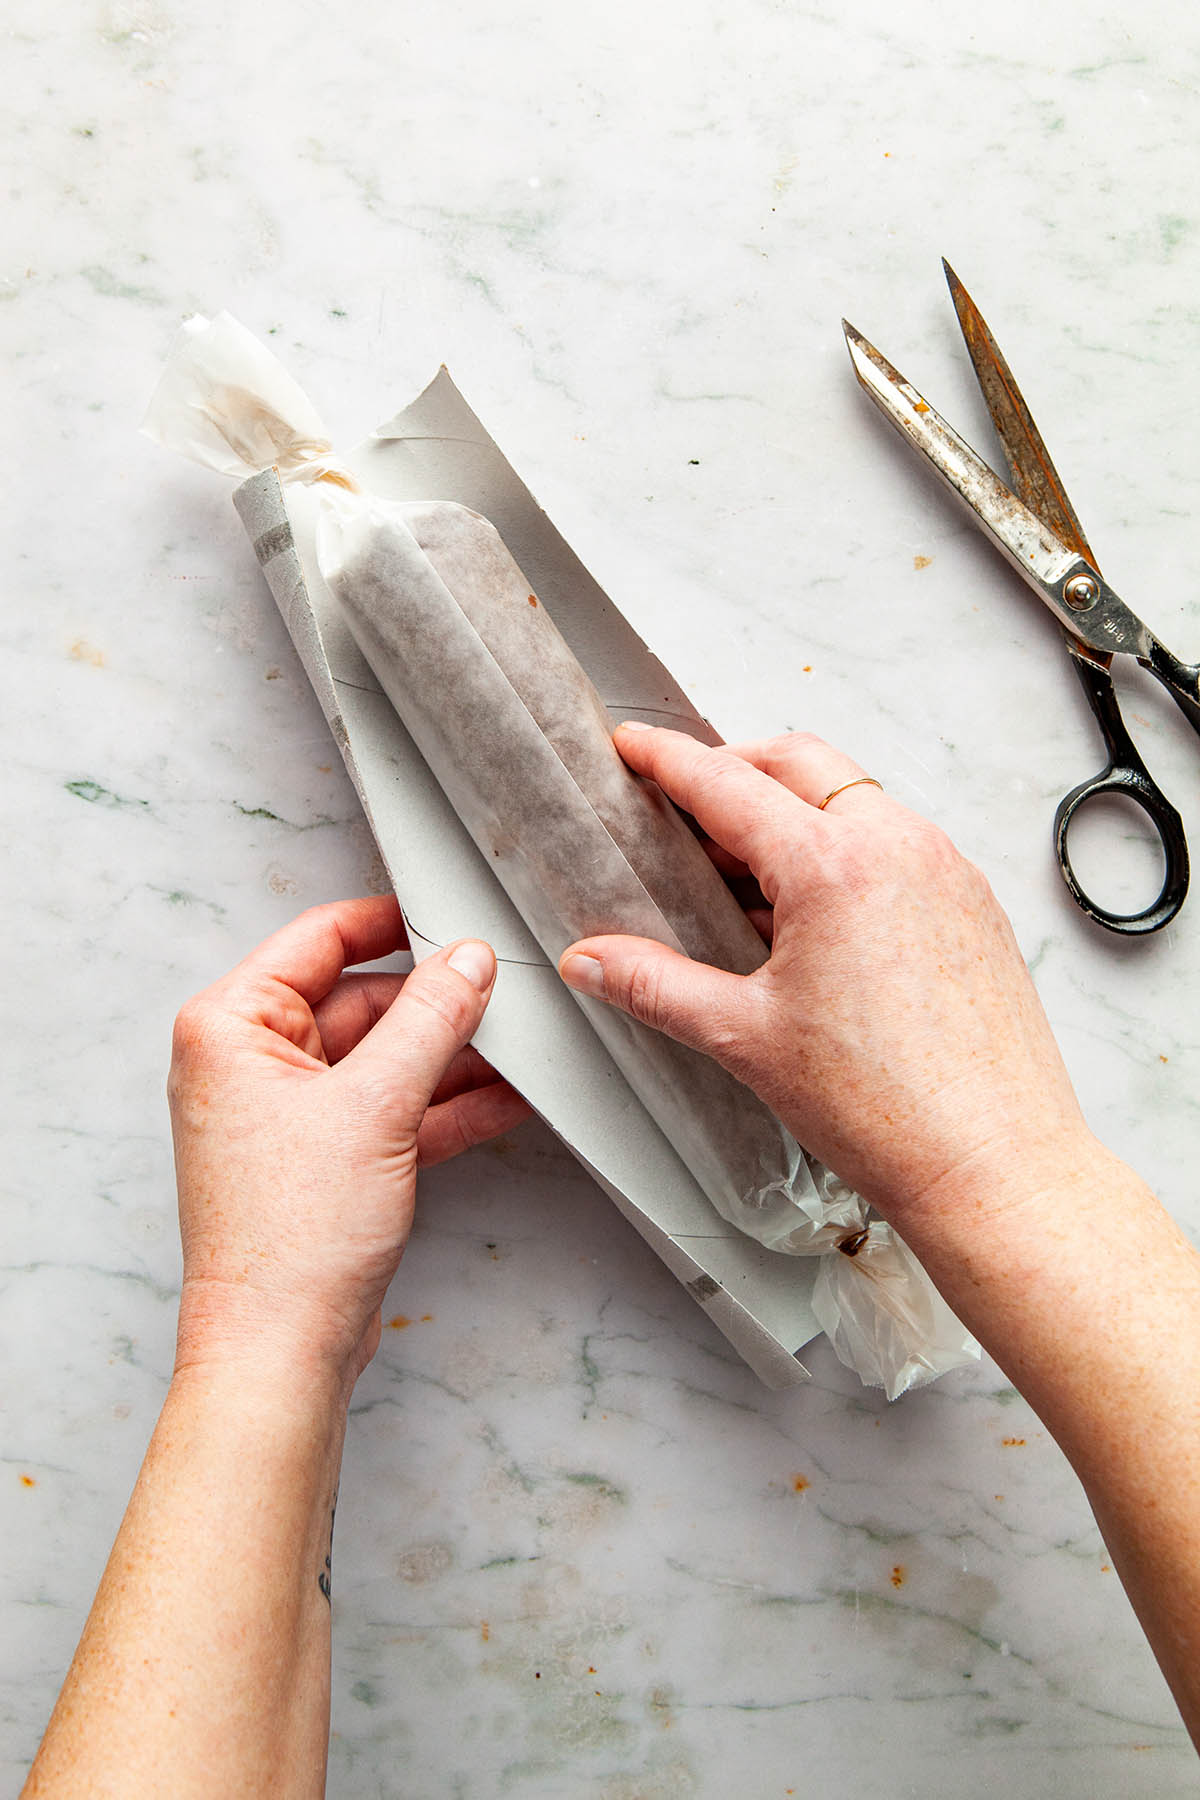 Hands placing a wrapped log of cookie dough in a paper towel tube cut open with scissors.